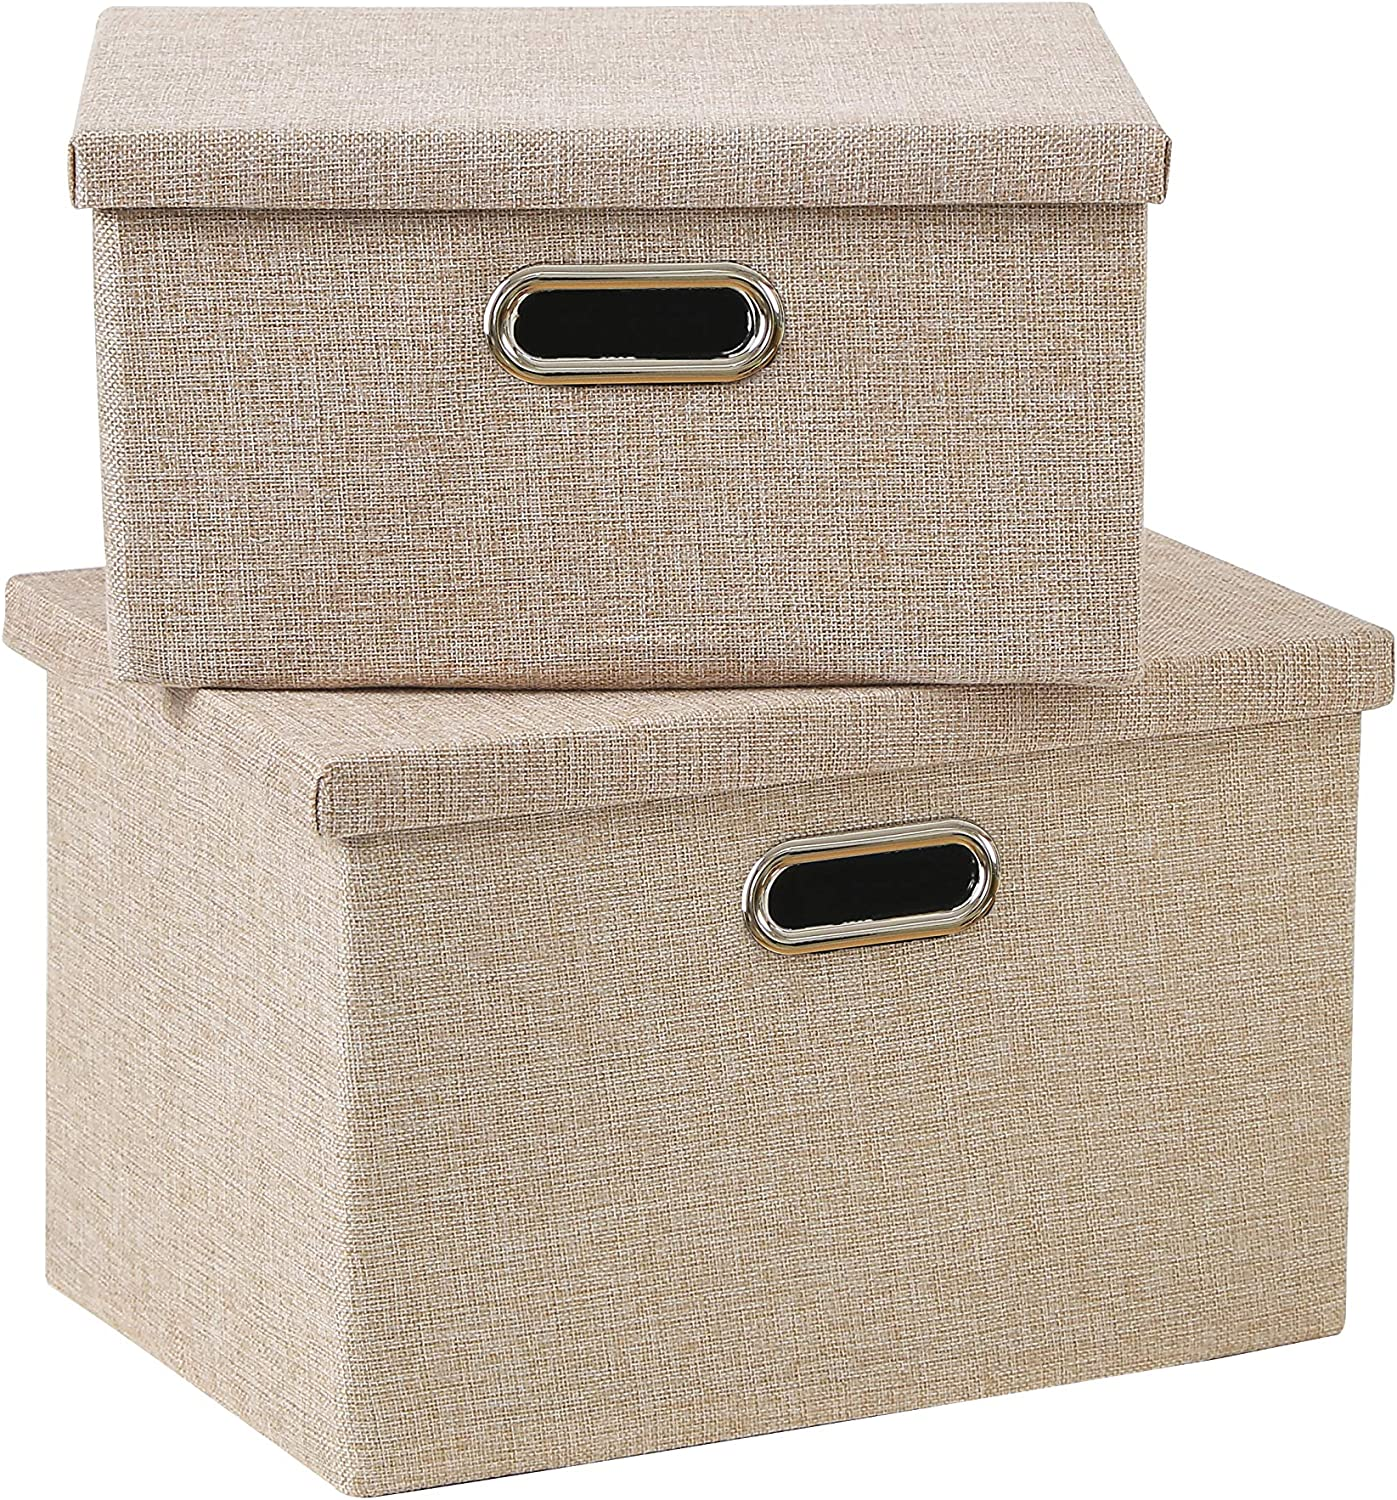 Enzk&Unity Foldable Lidded Storage Bins Cube Linen Fabric Storage Basket with Handle Organizer Box Containers for Shelf Home Office Closet Nursery, 2 Pack, Beige